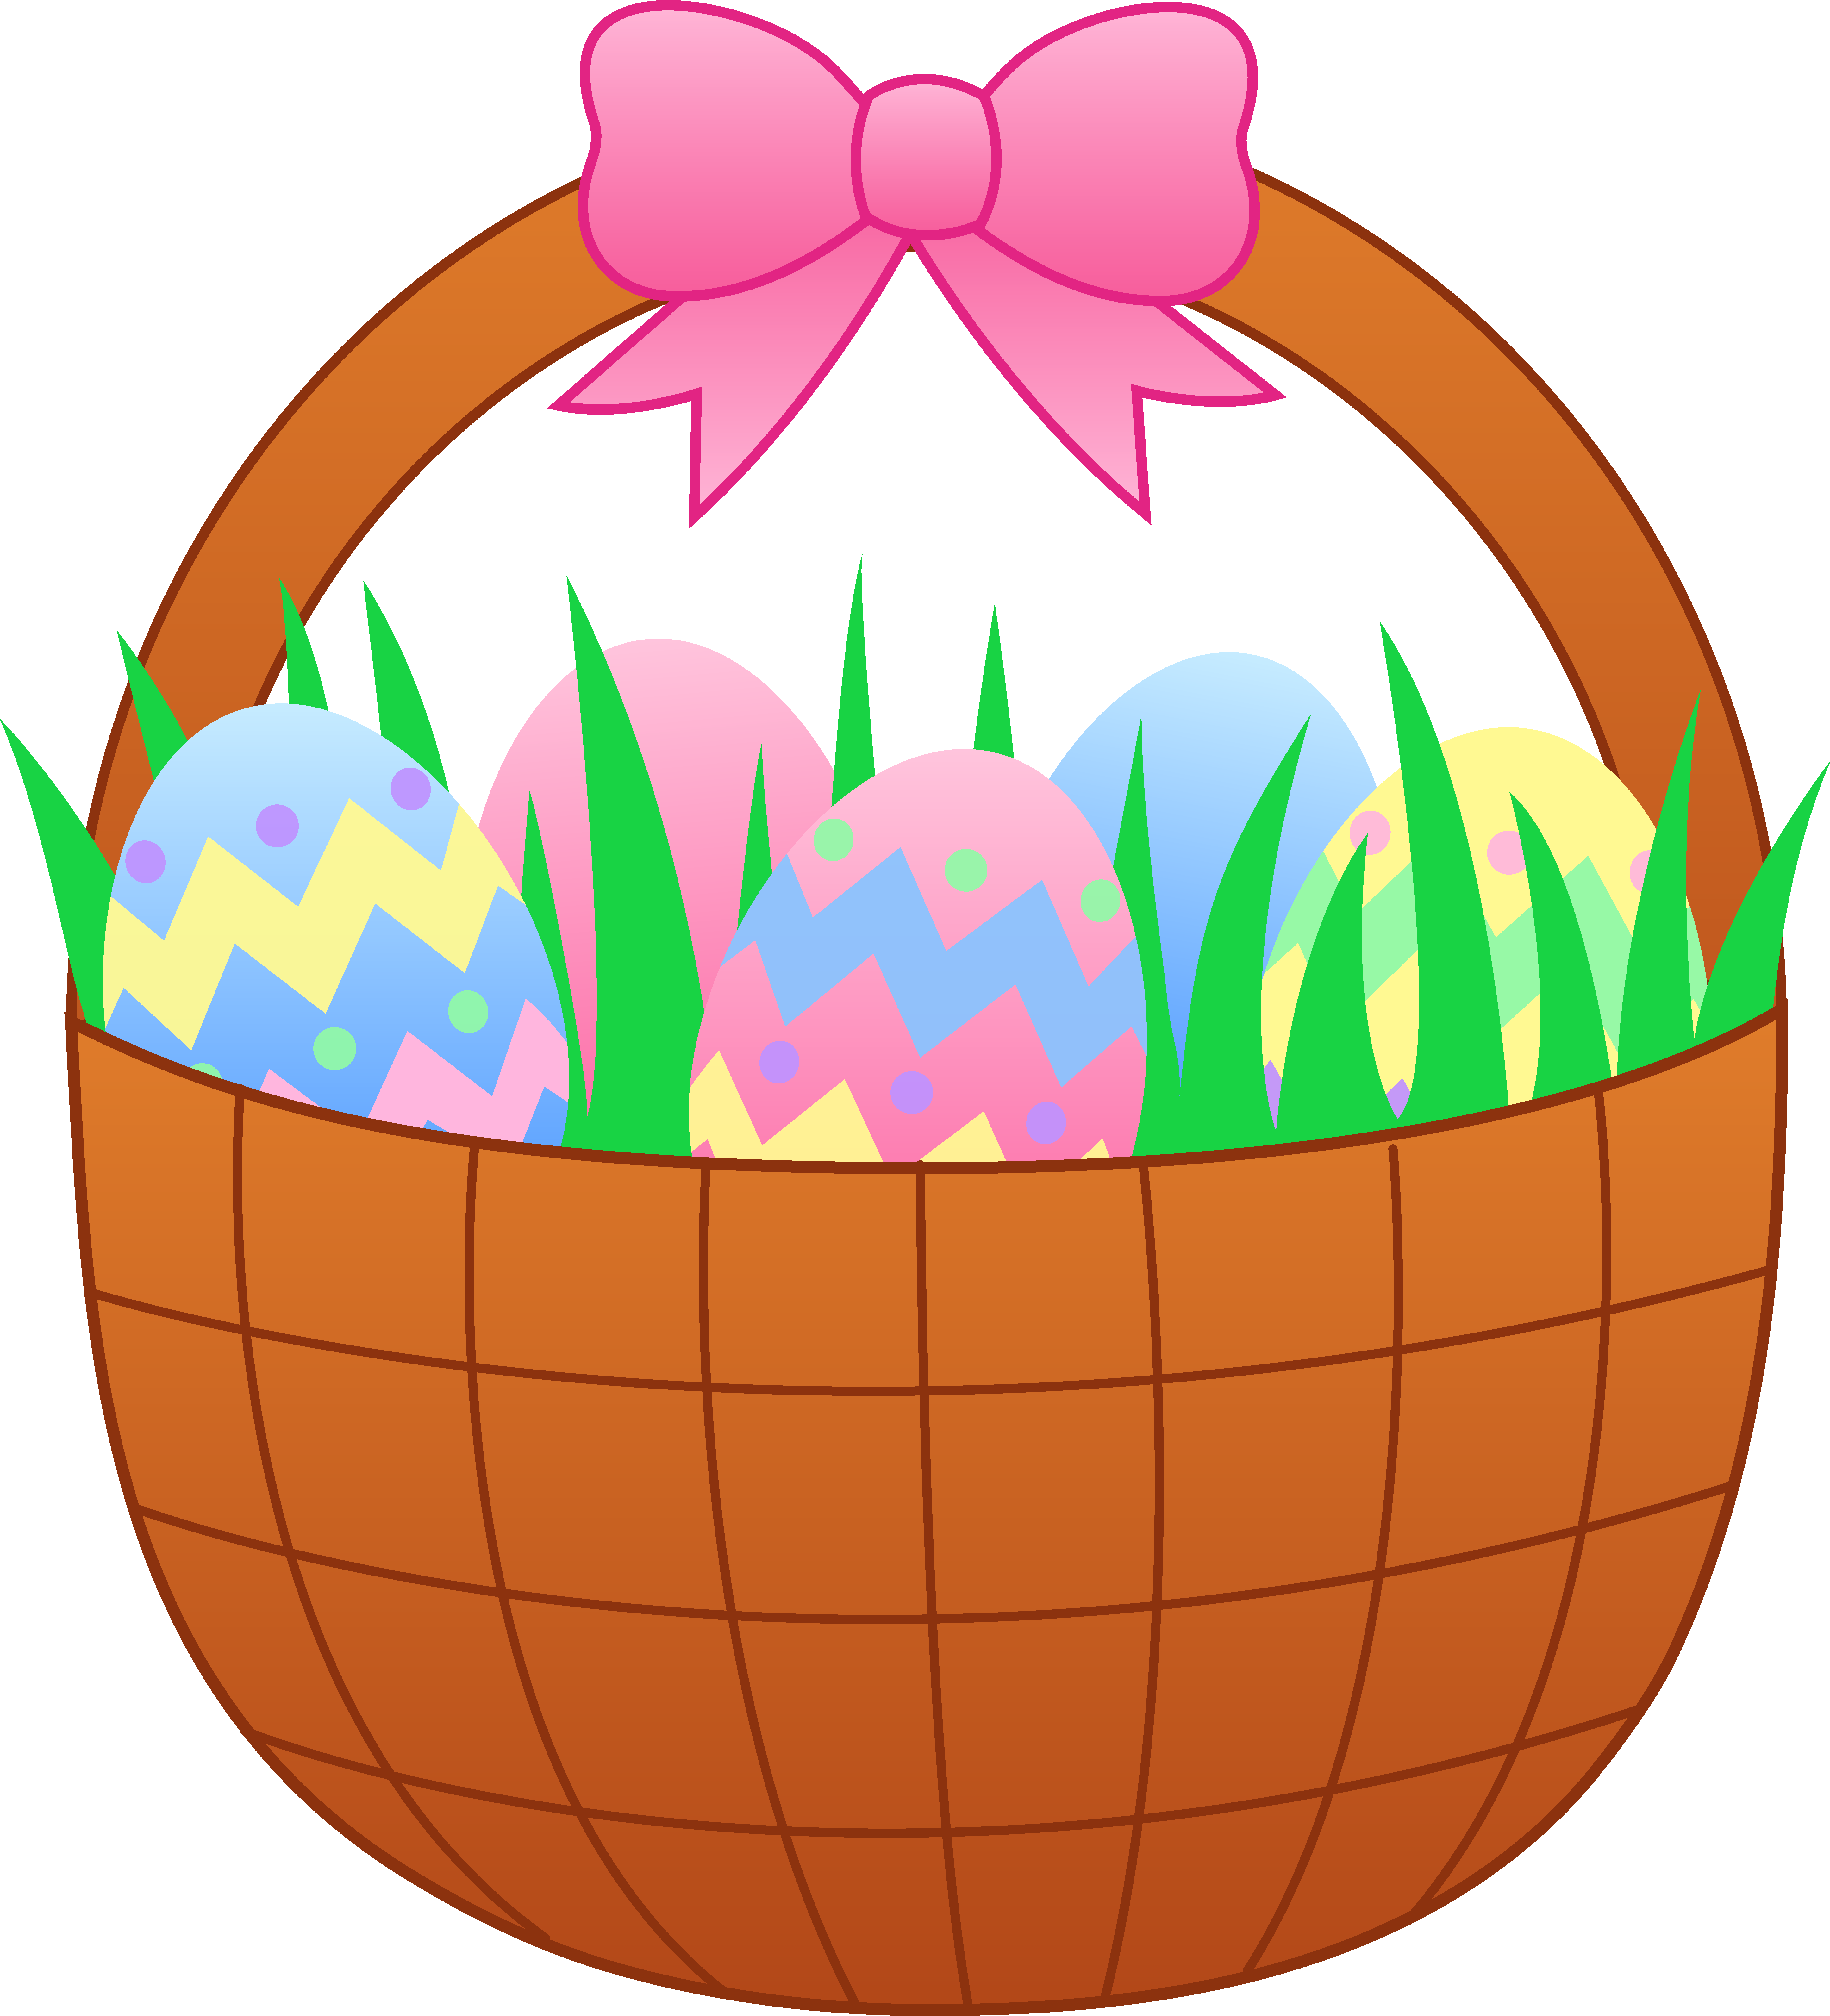 Clip Art For Easter - Cliparts.co